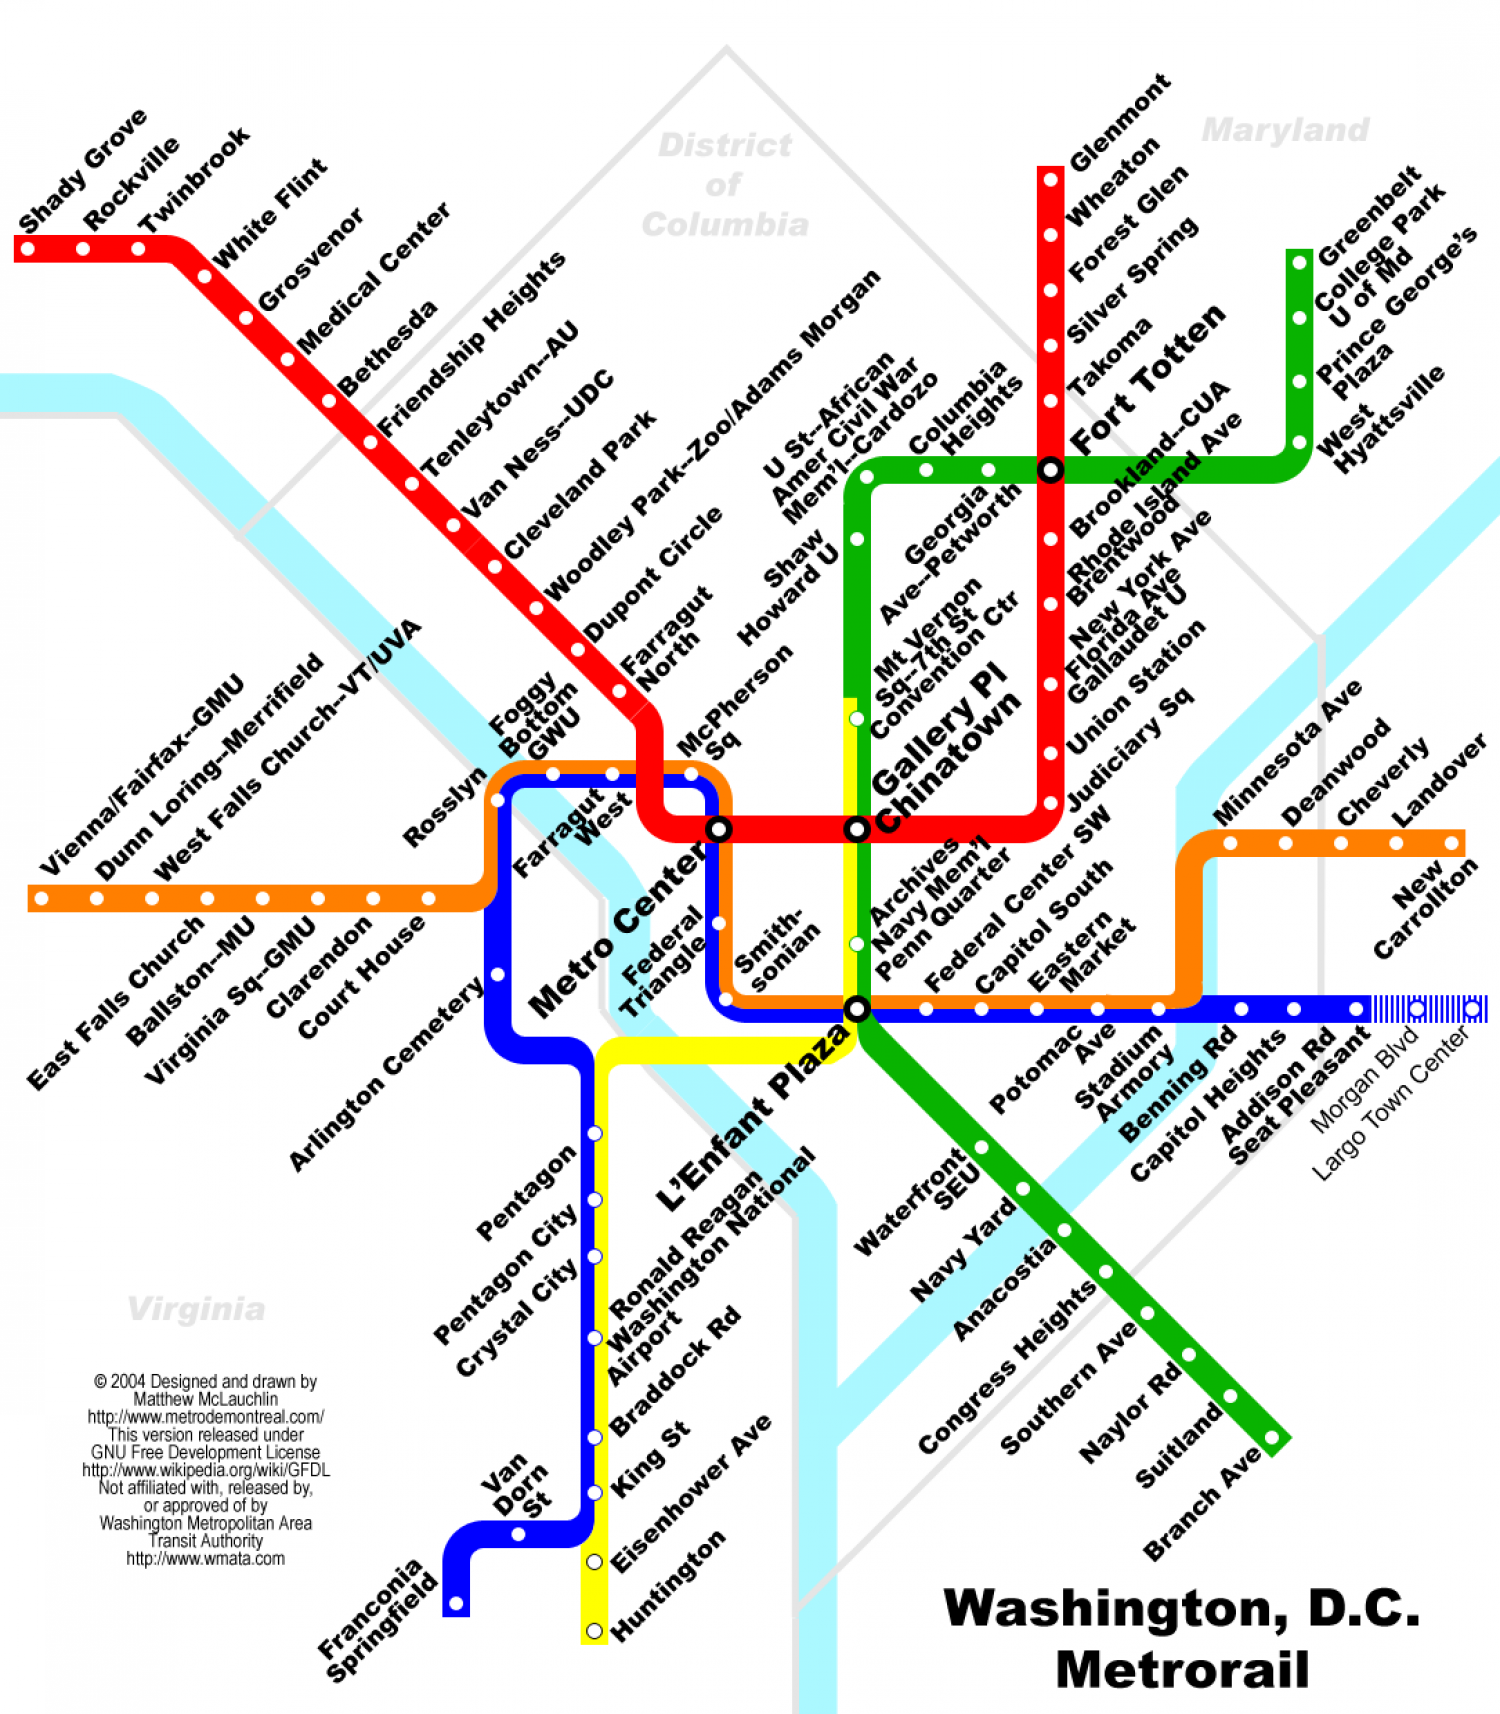 Washington D.C. metro map | Visual.ly